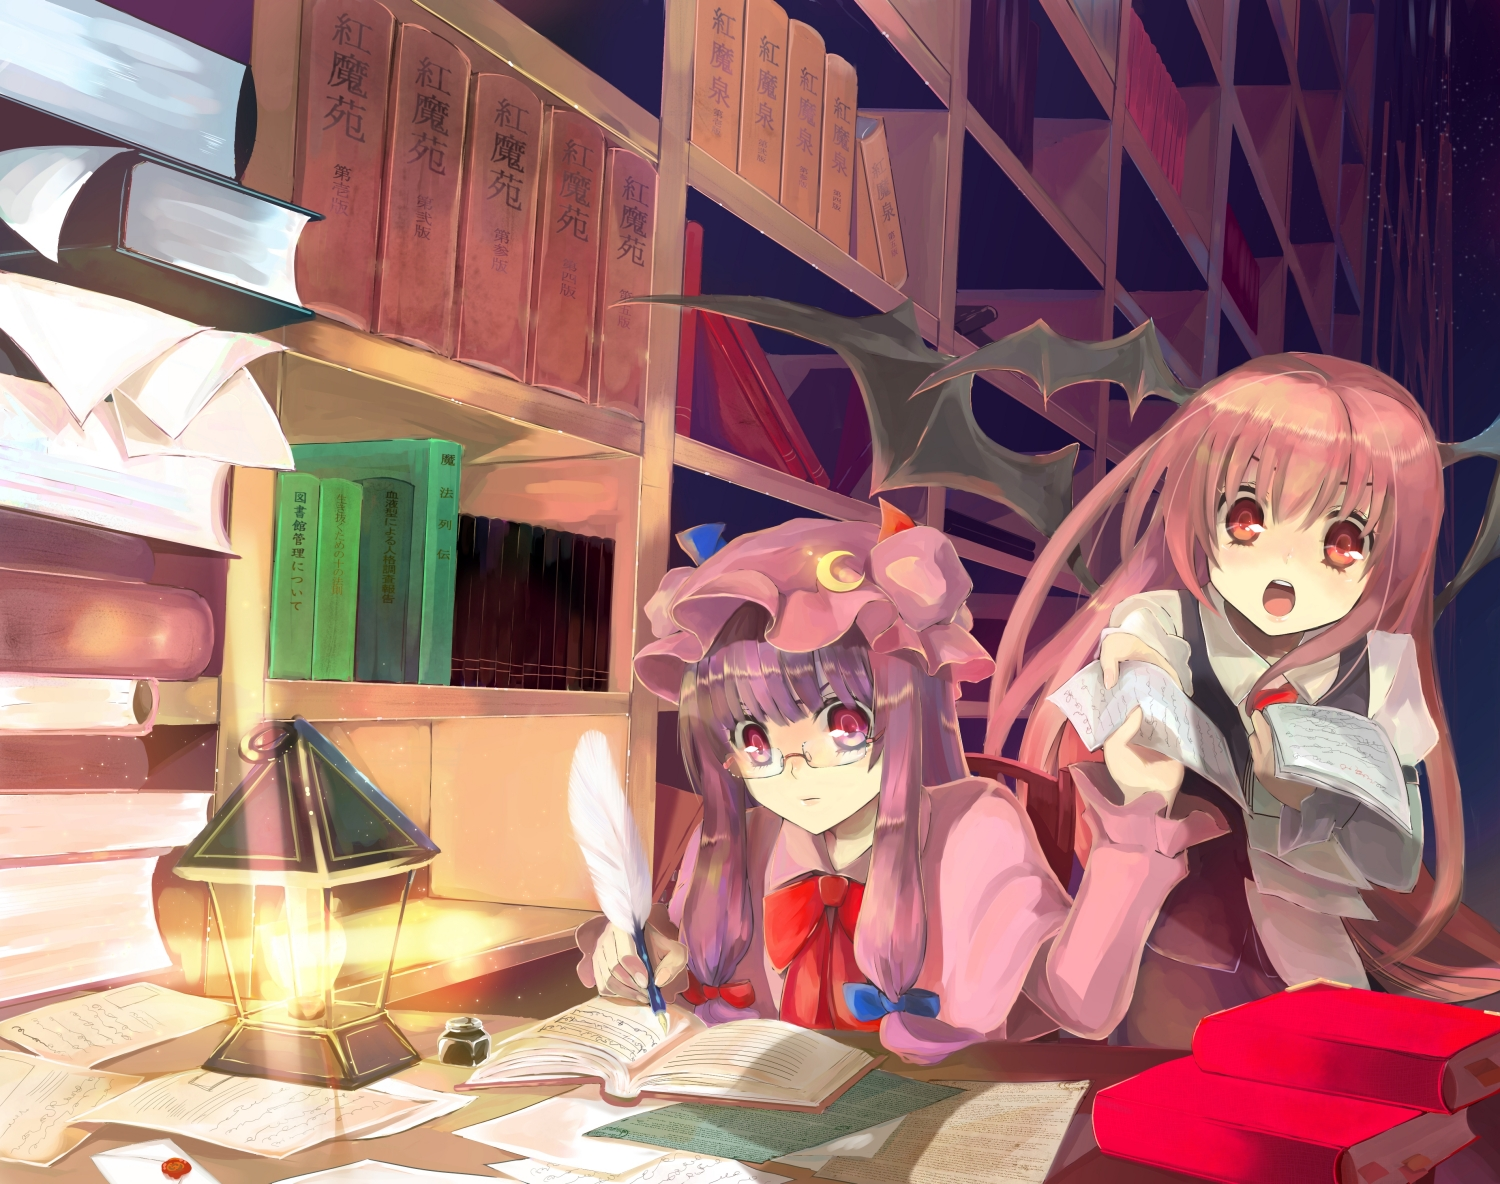 Live Wallpaper Girl Anime Touhou Wallpaper Pack 08 04 2012